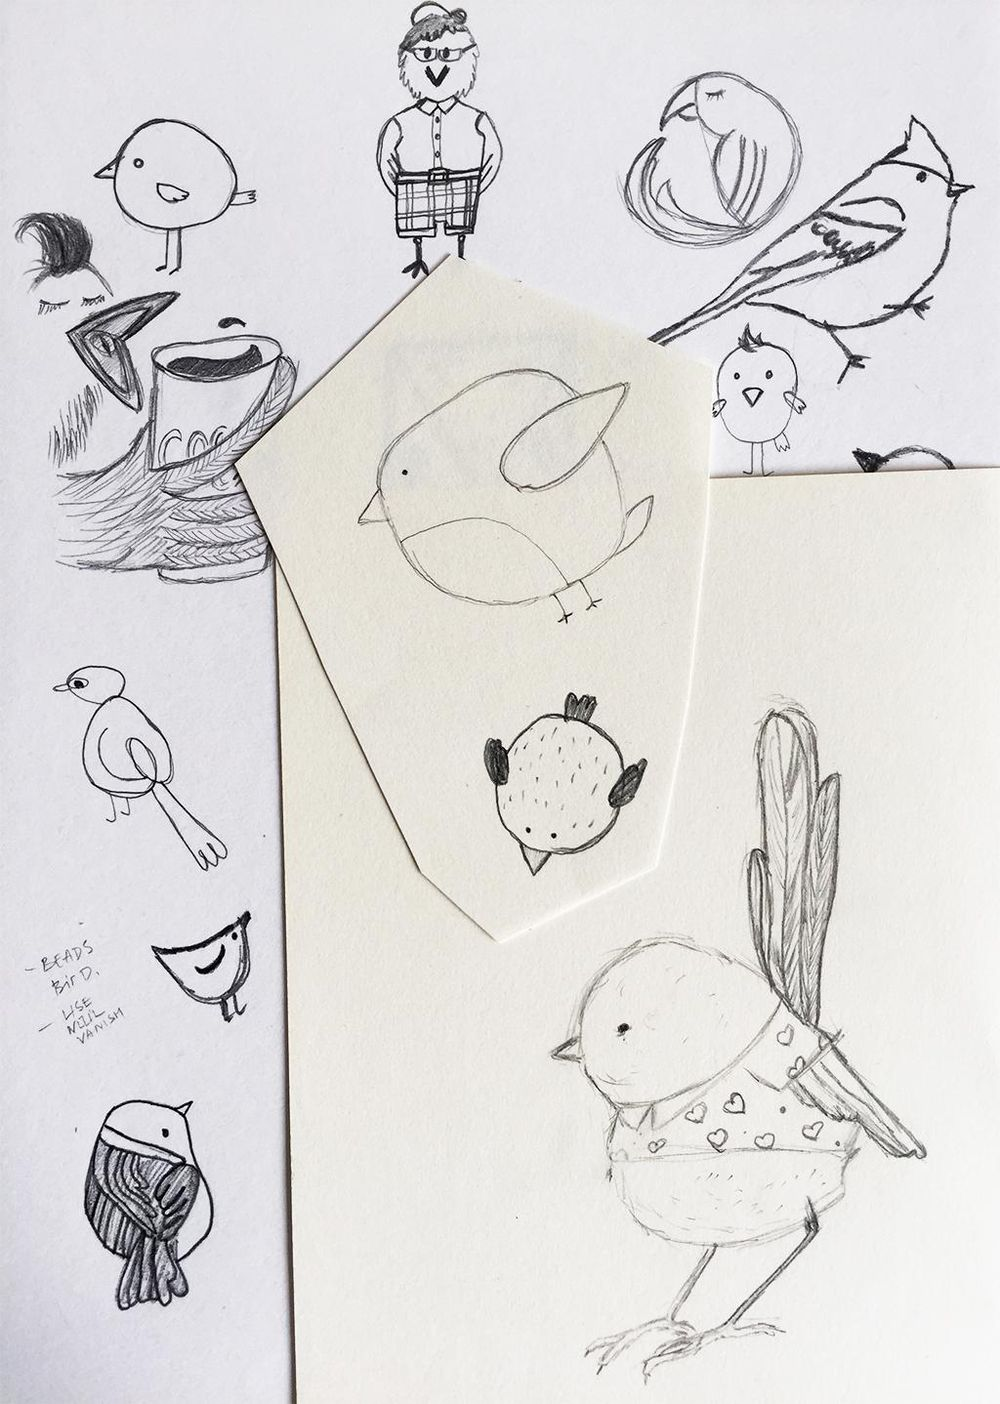 100 Birds - image 3 - student project